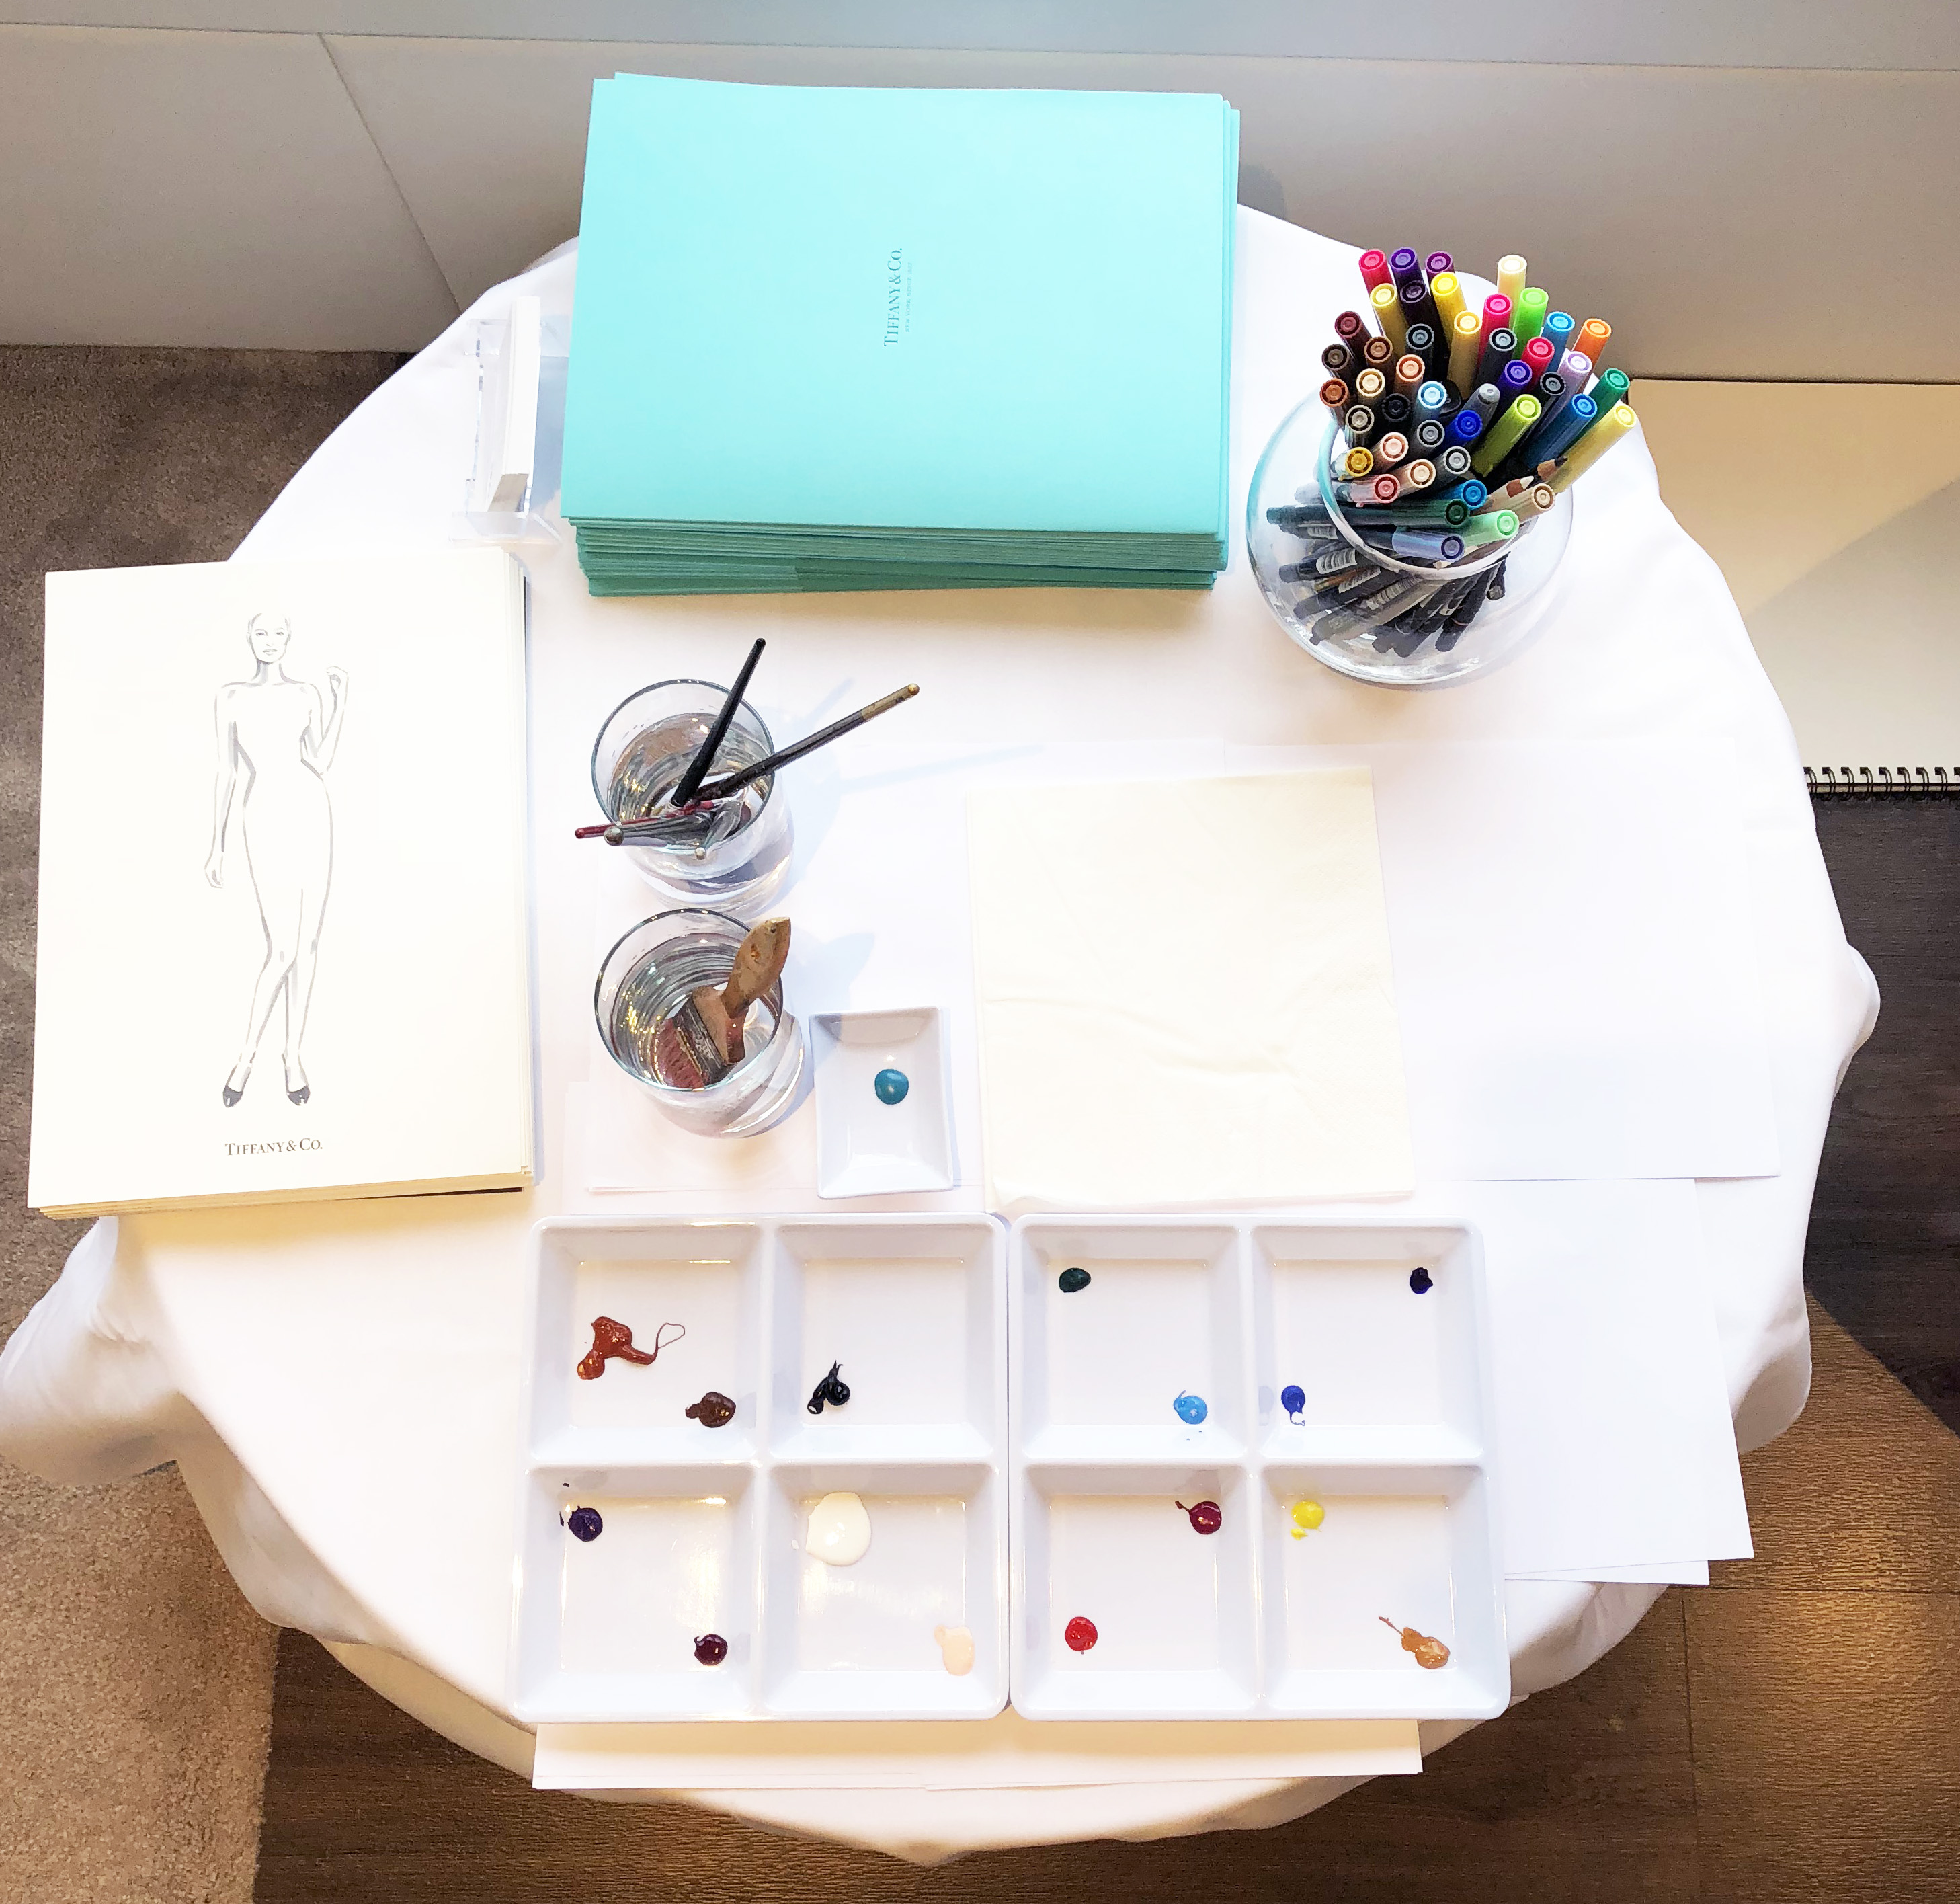 Art supply table for live drawing